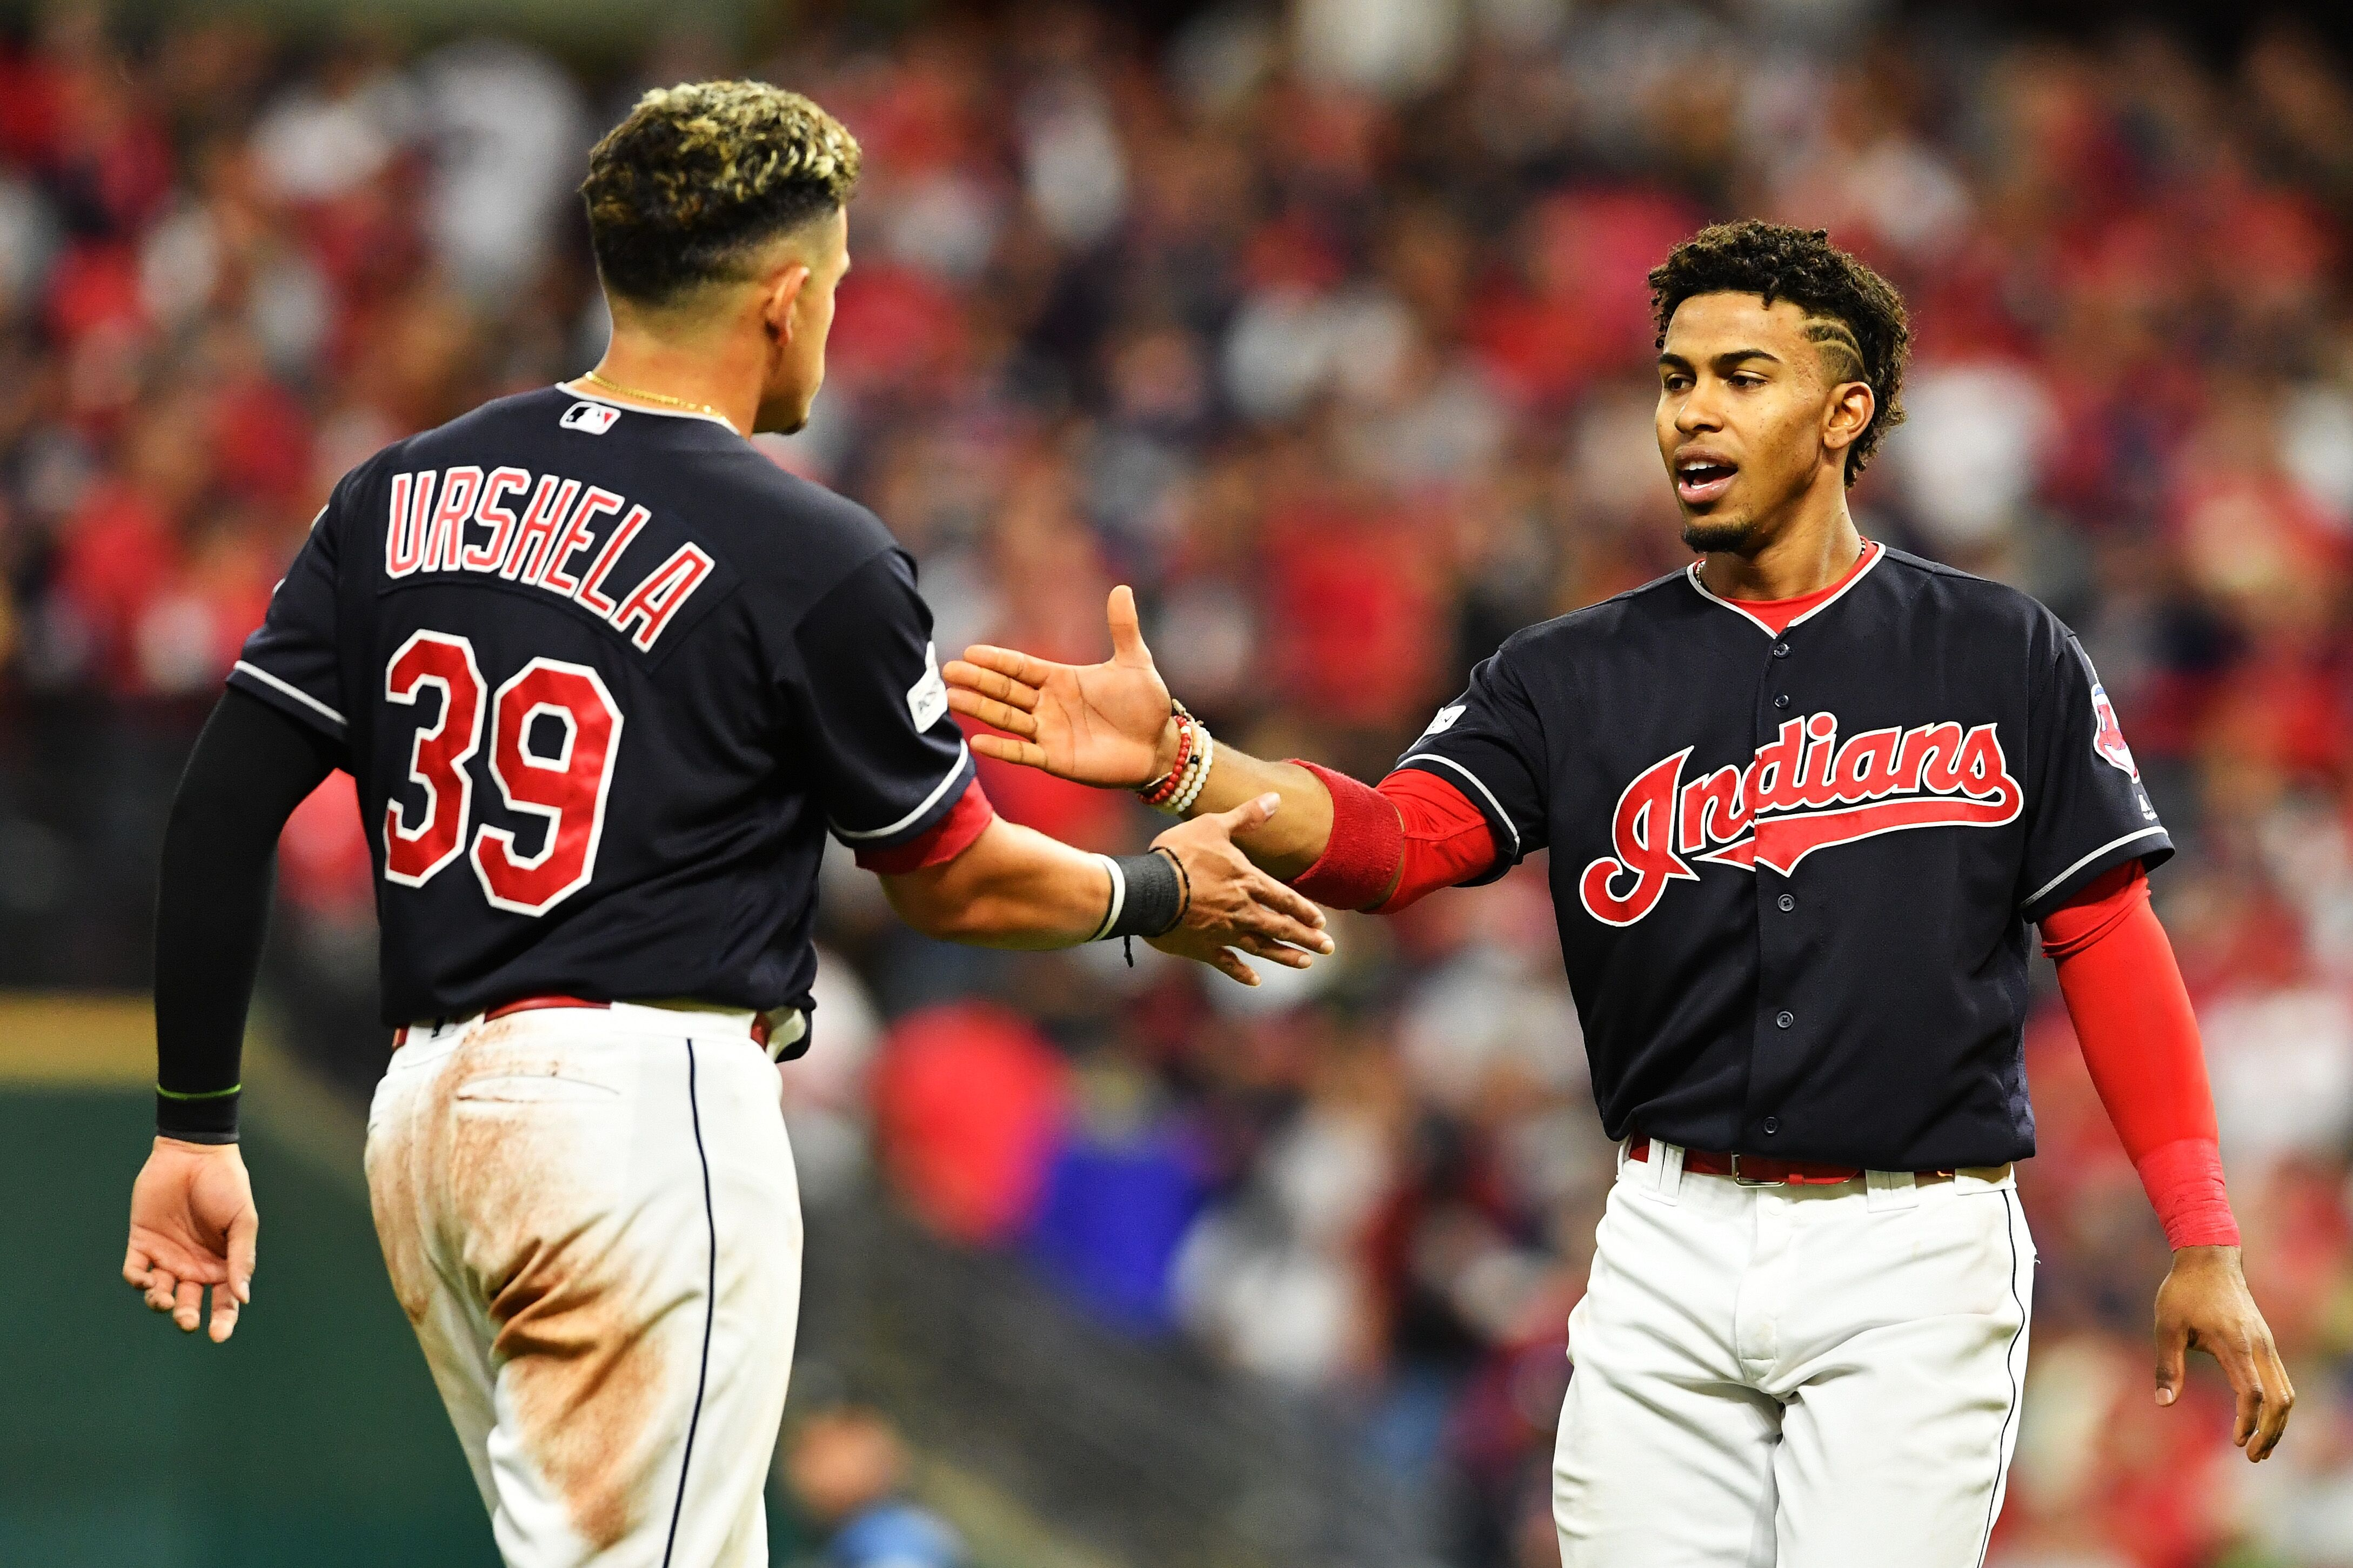 860342978-divisional-round-new-york-yankees-v-cleveland-indians-game-five.jpg